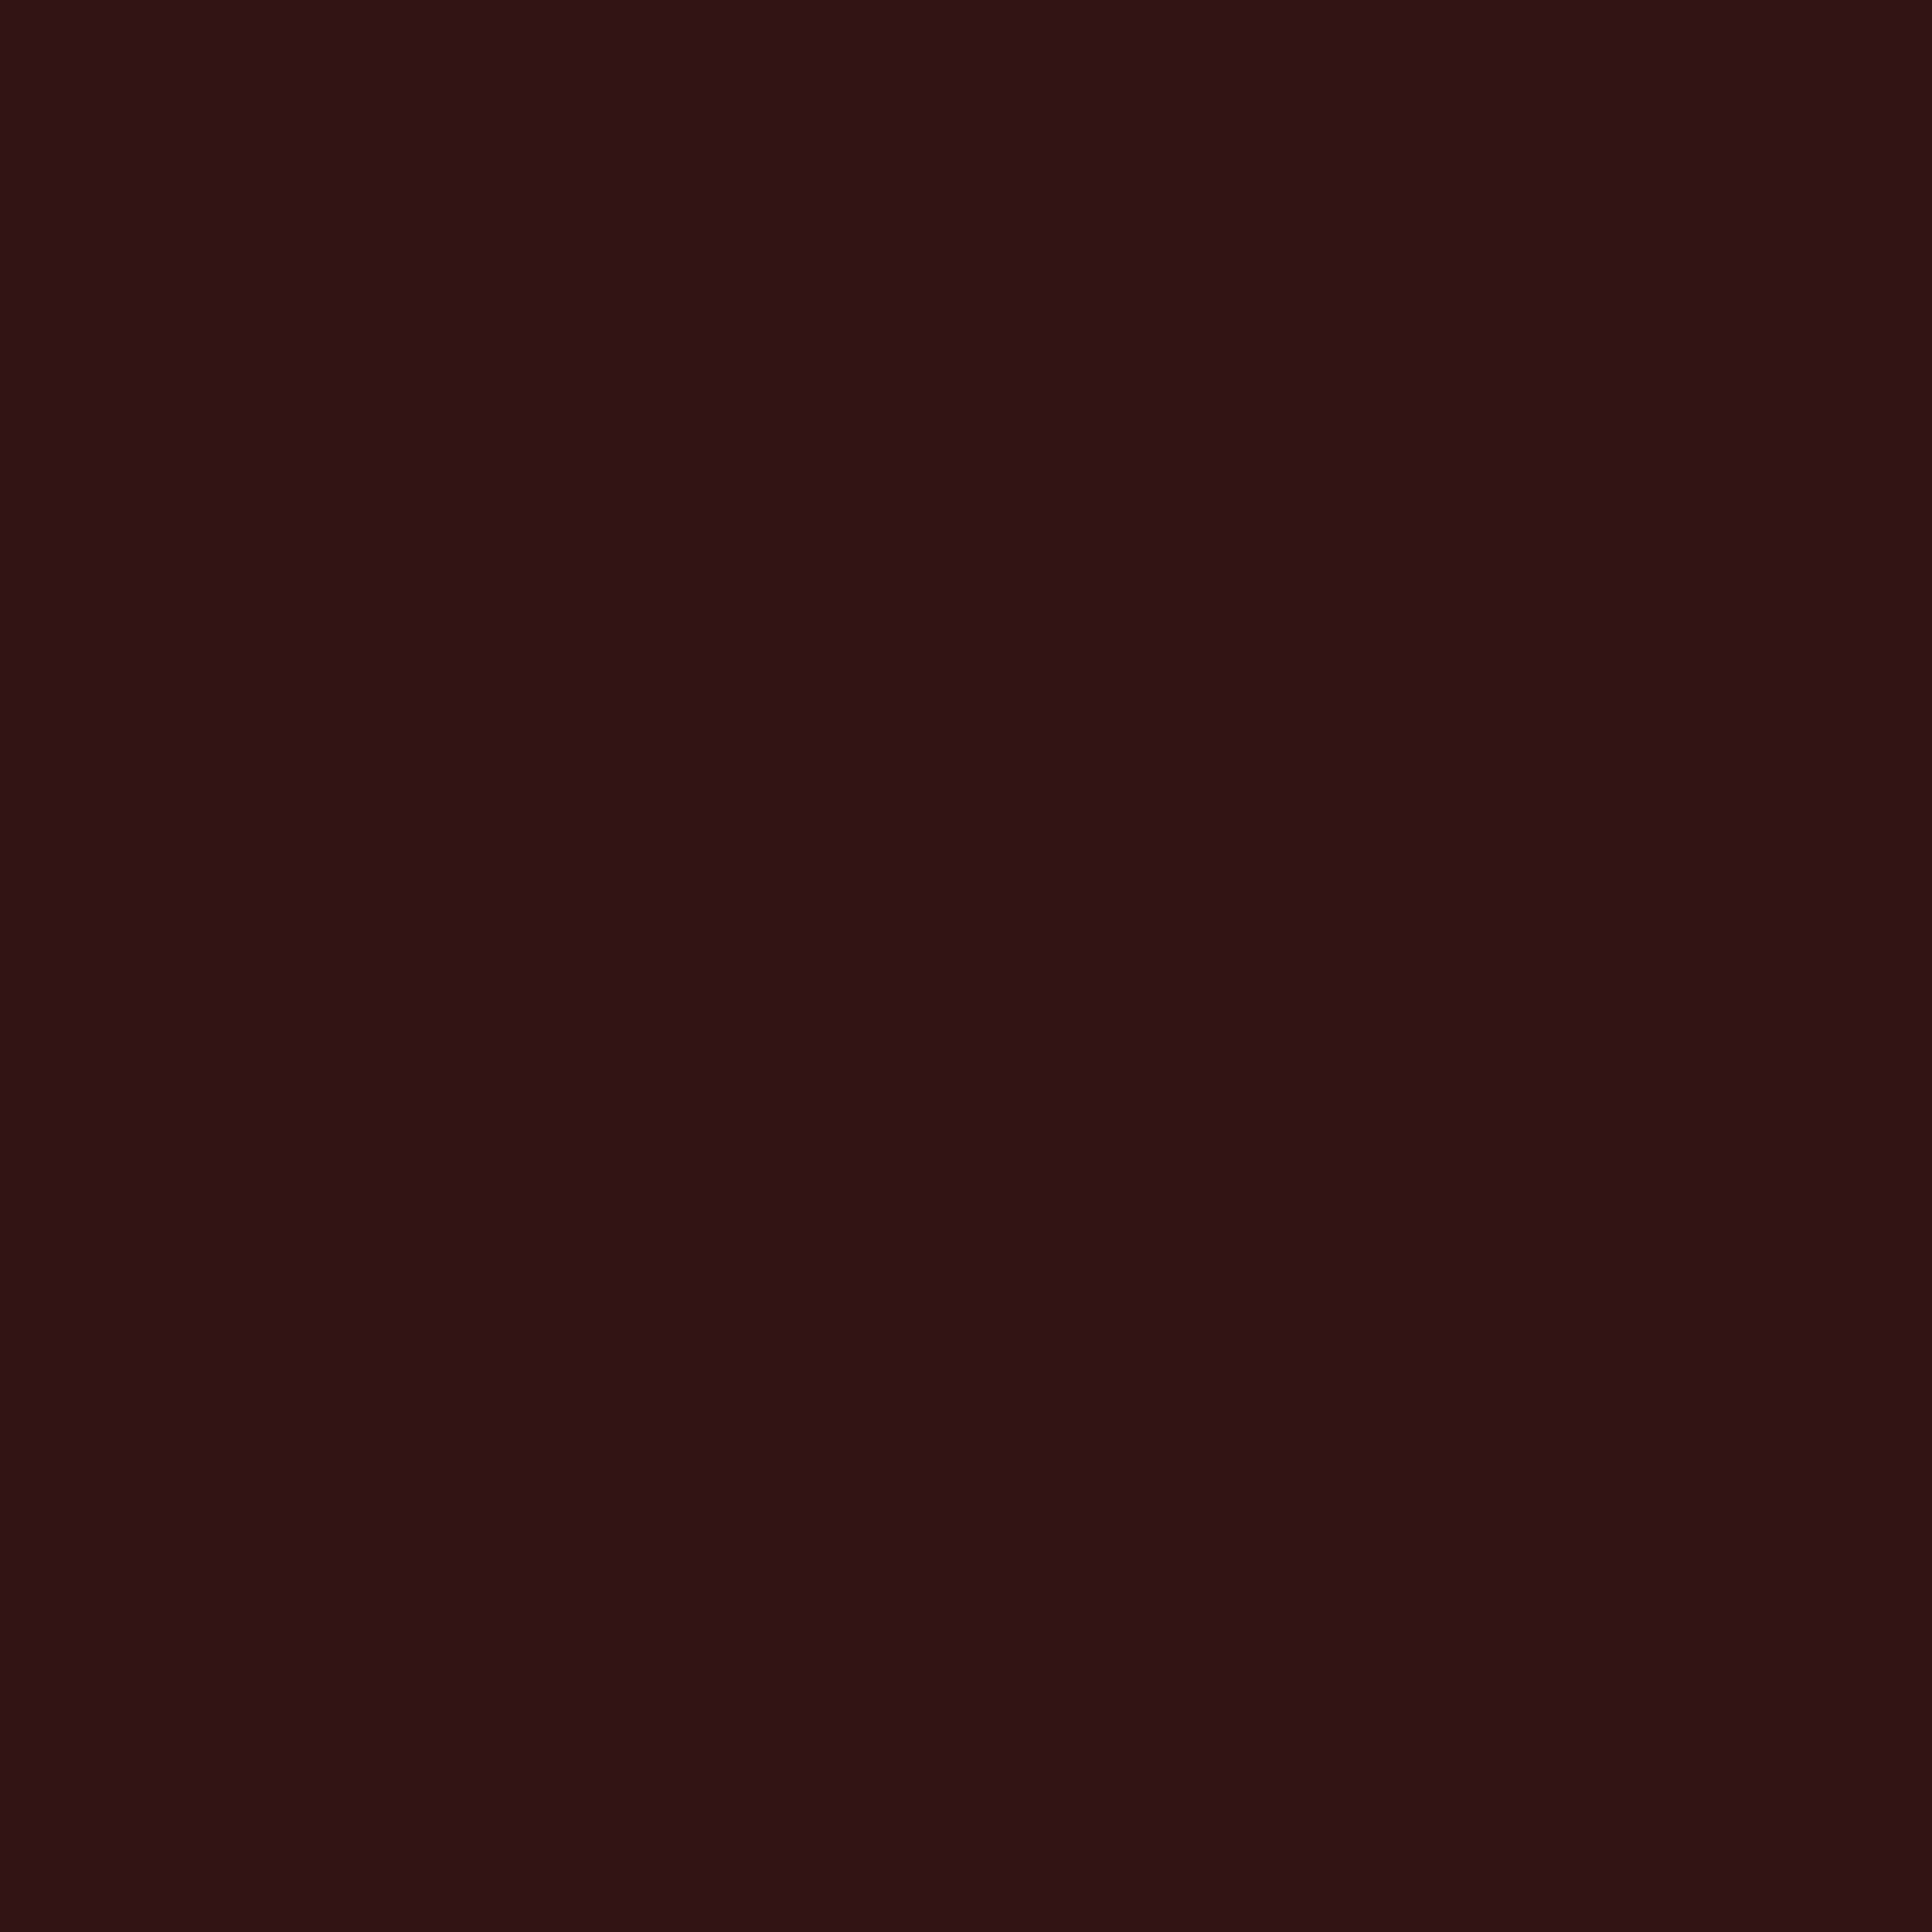 2048x2048 Seal Brown Solid Color Background